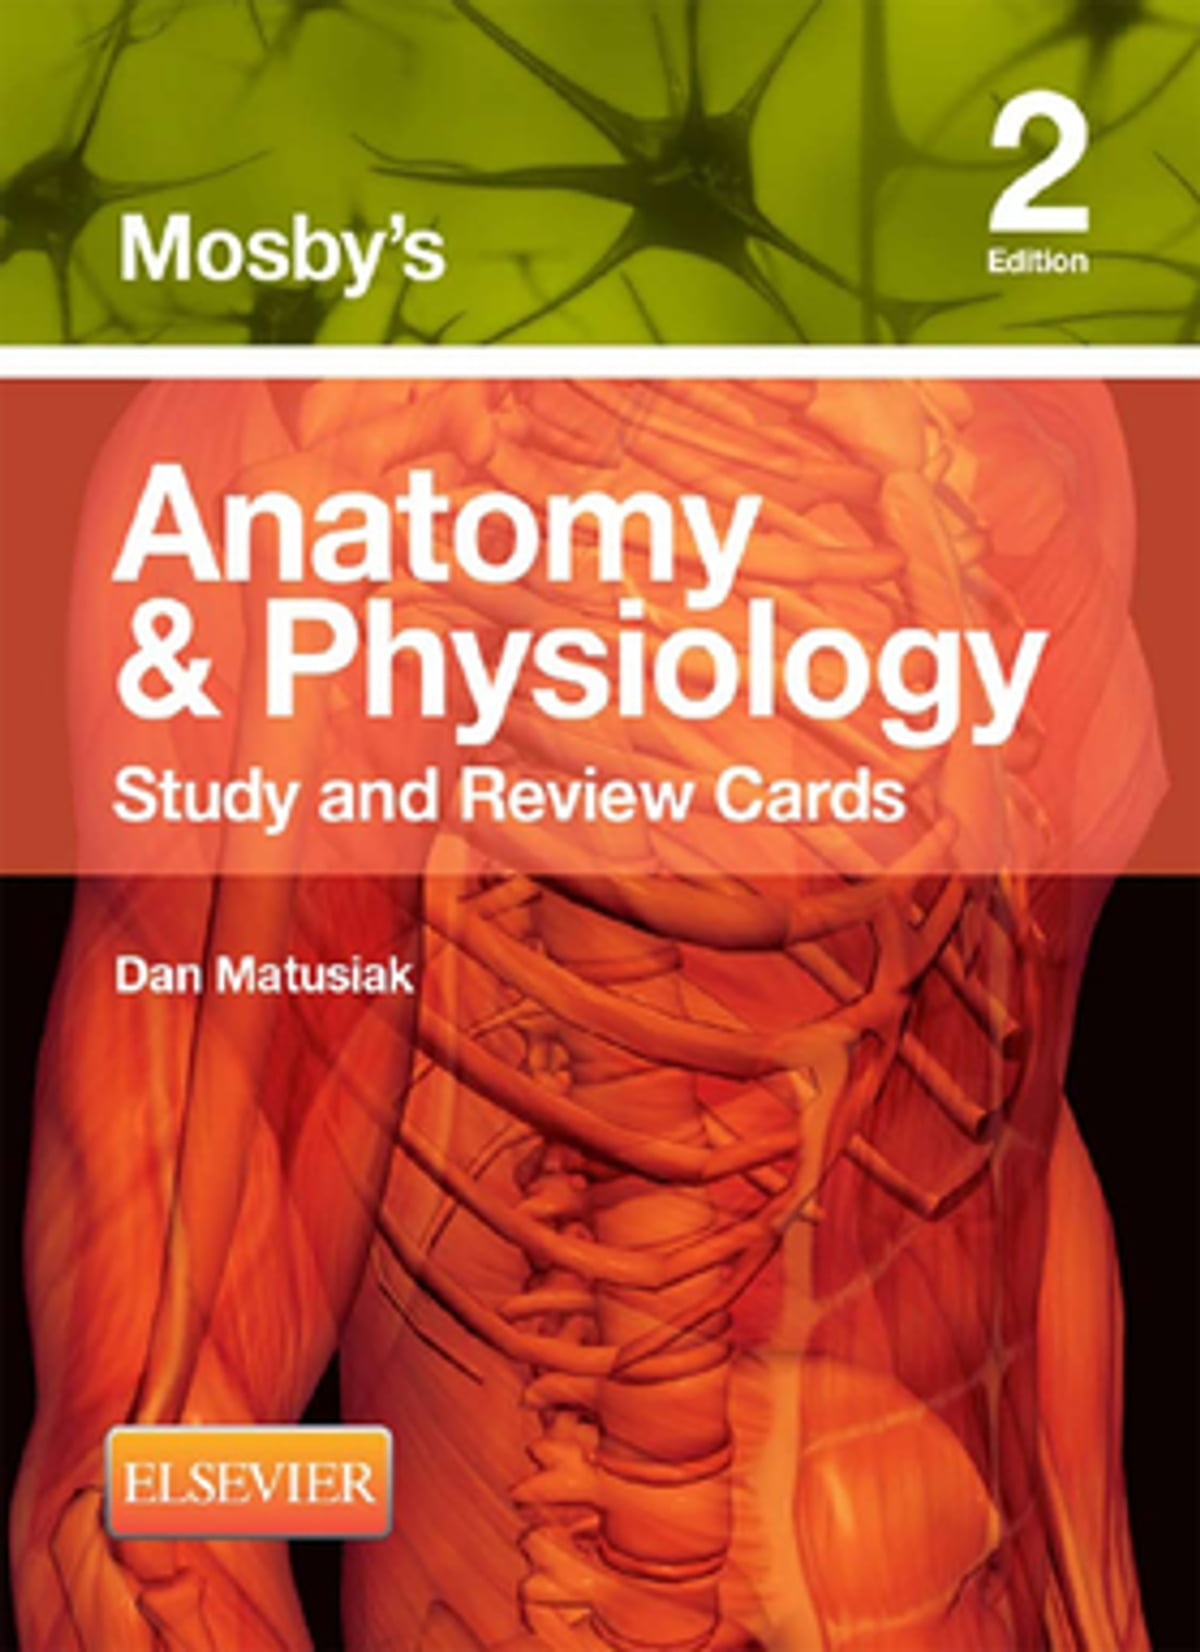 Mosby\'s Anatomy & Physiology Study and Review Cards - E-Book eBook ...